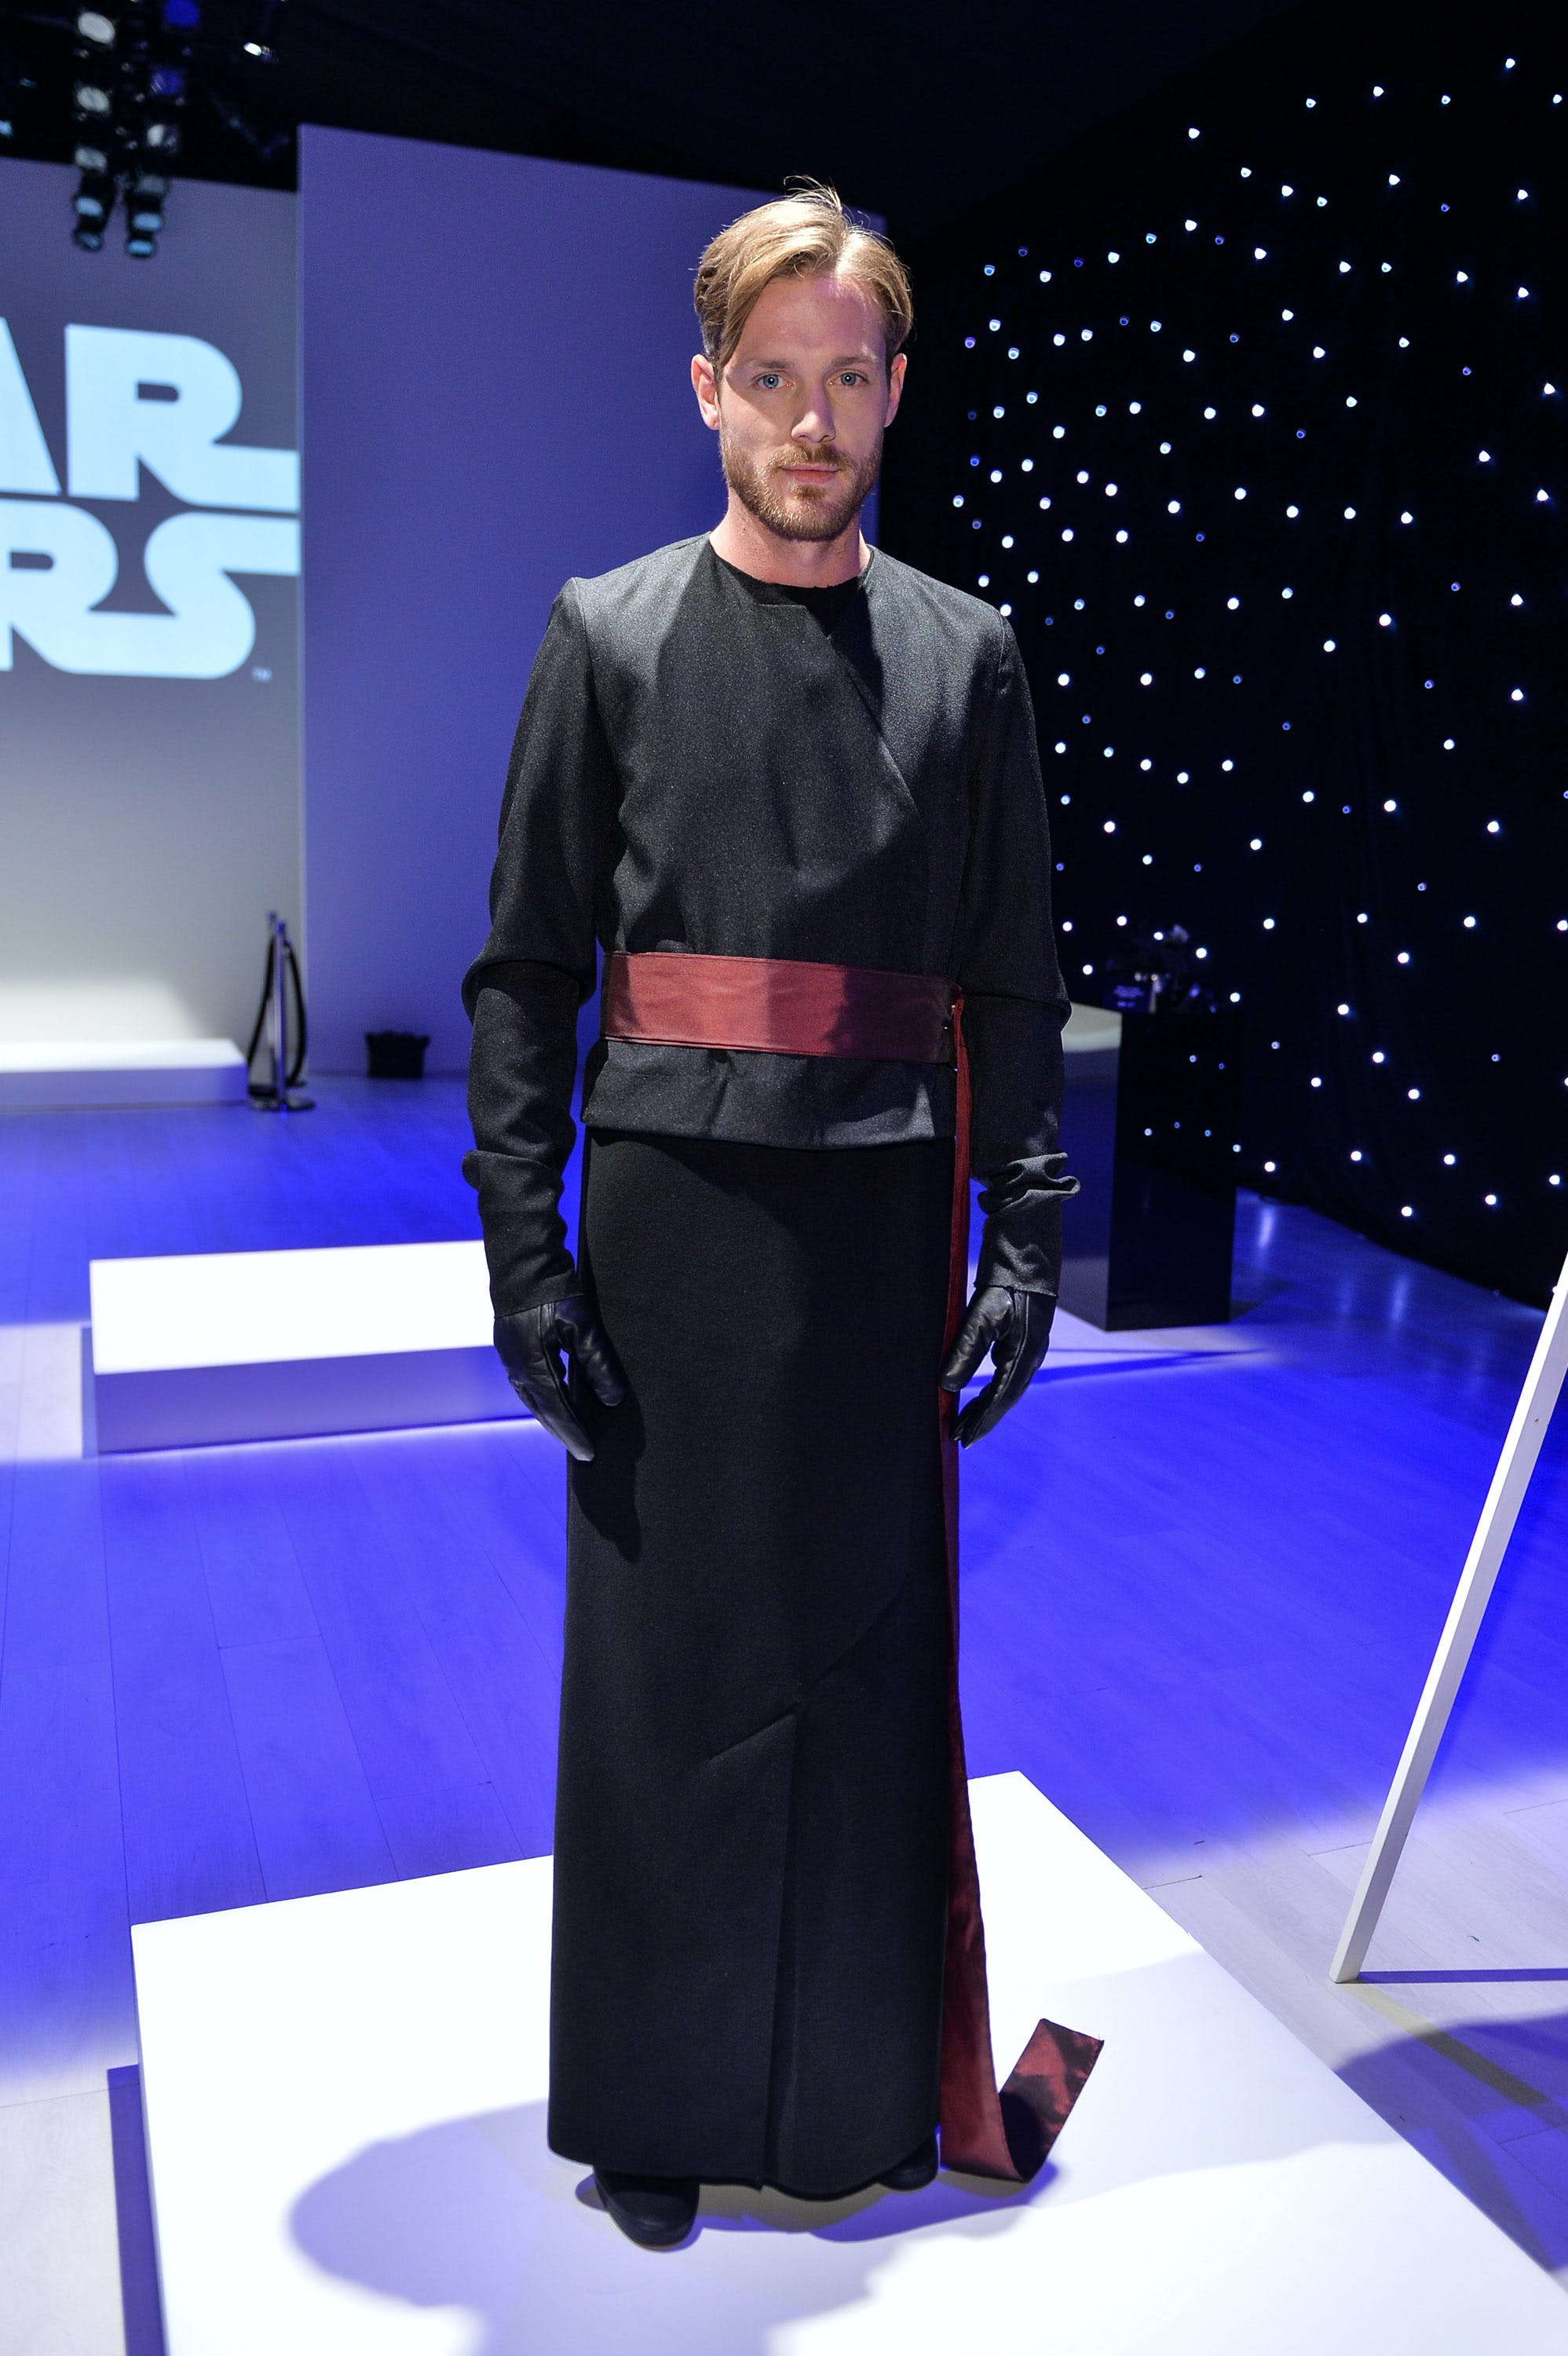 Outfit designed by S.P. Badu